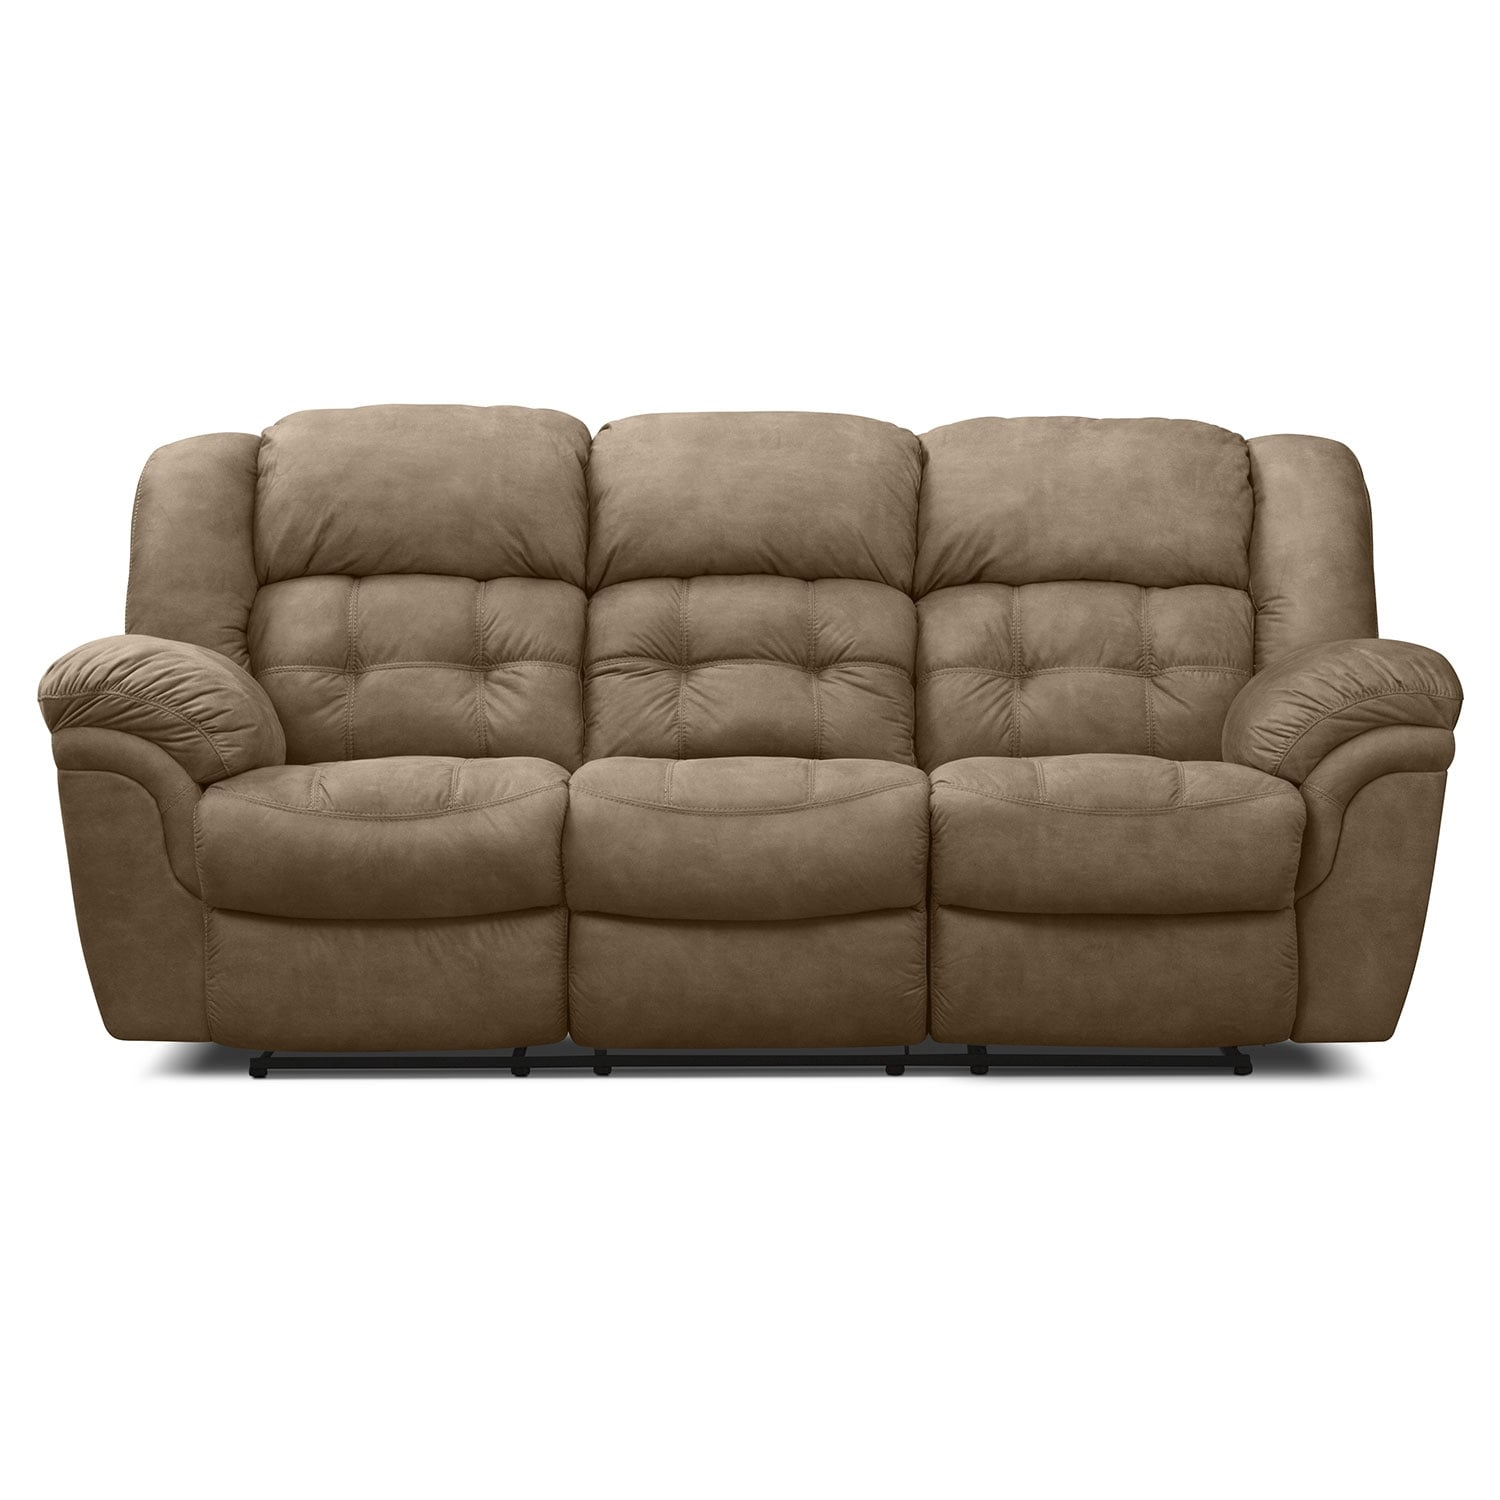 Lancer pecan upholstery reclining sofa american for Signature furniture